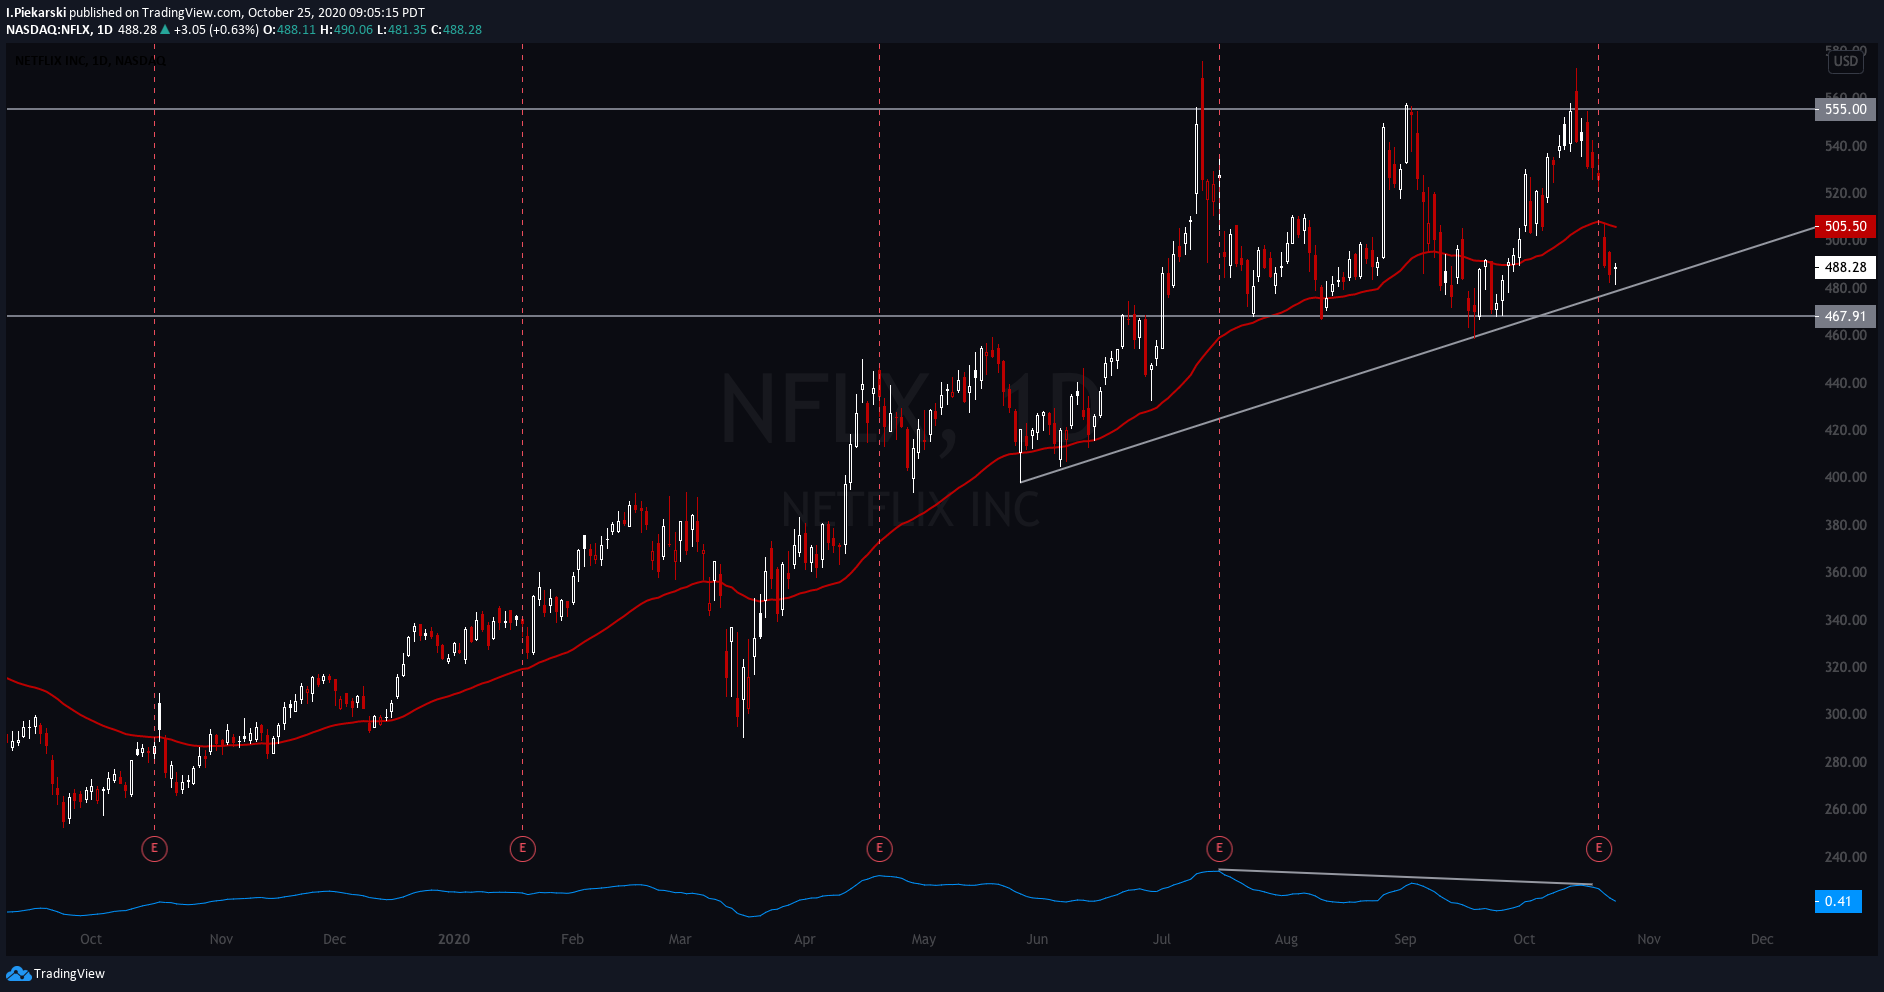 $NFLX Daily Chart - triple top confirmed with gap